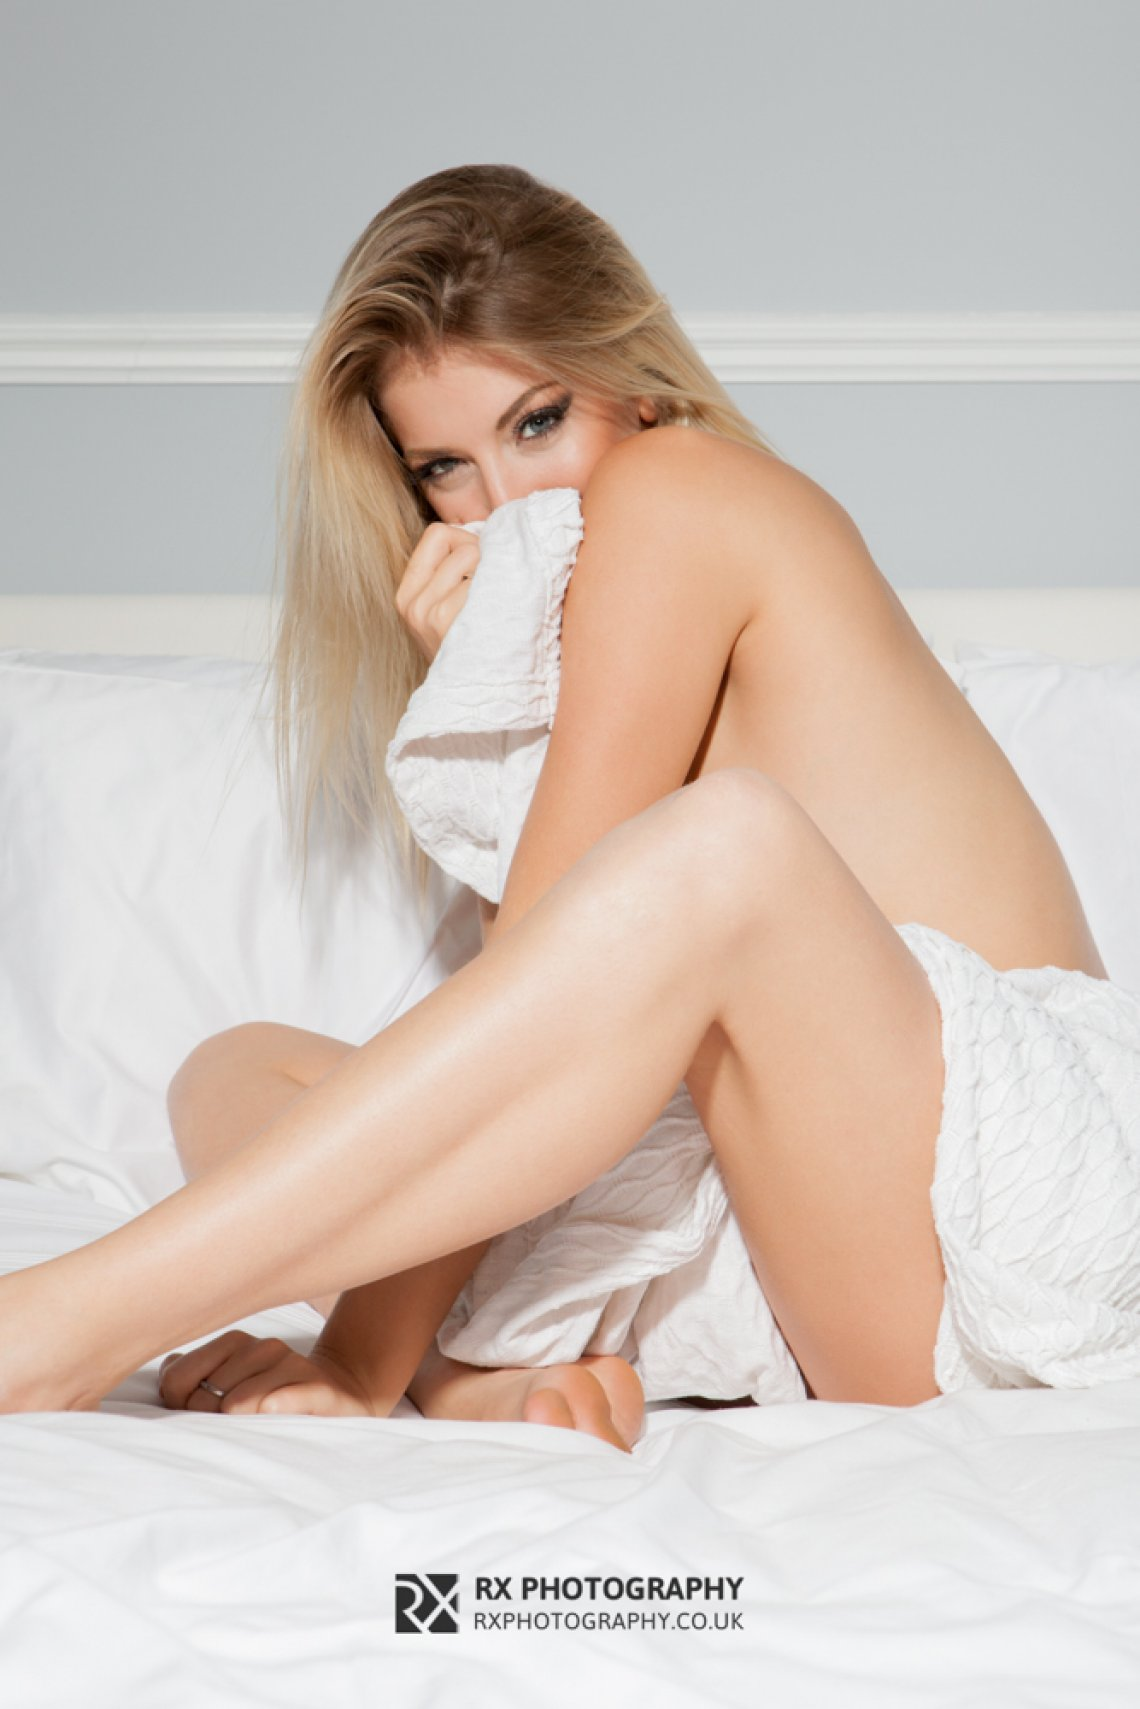 RX Photography blonde implied sexy bedsheets legs tan cheeky smile